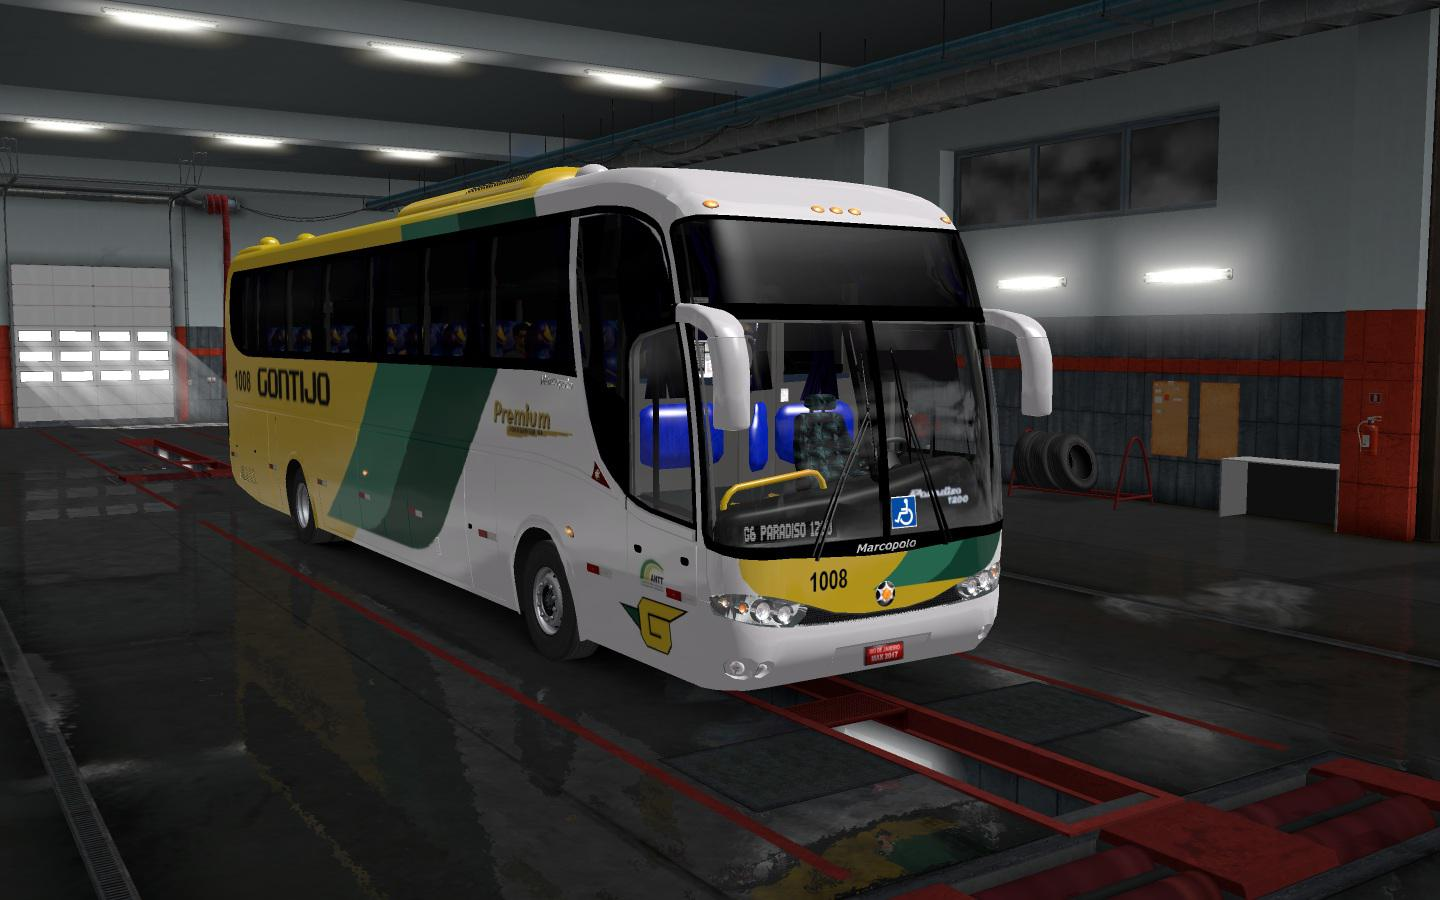 ETS2 - Marcopolo Paradiso G6 1200 4x2 Bus Mod v1.0 (1.35.X)